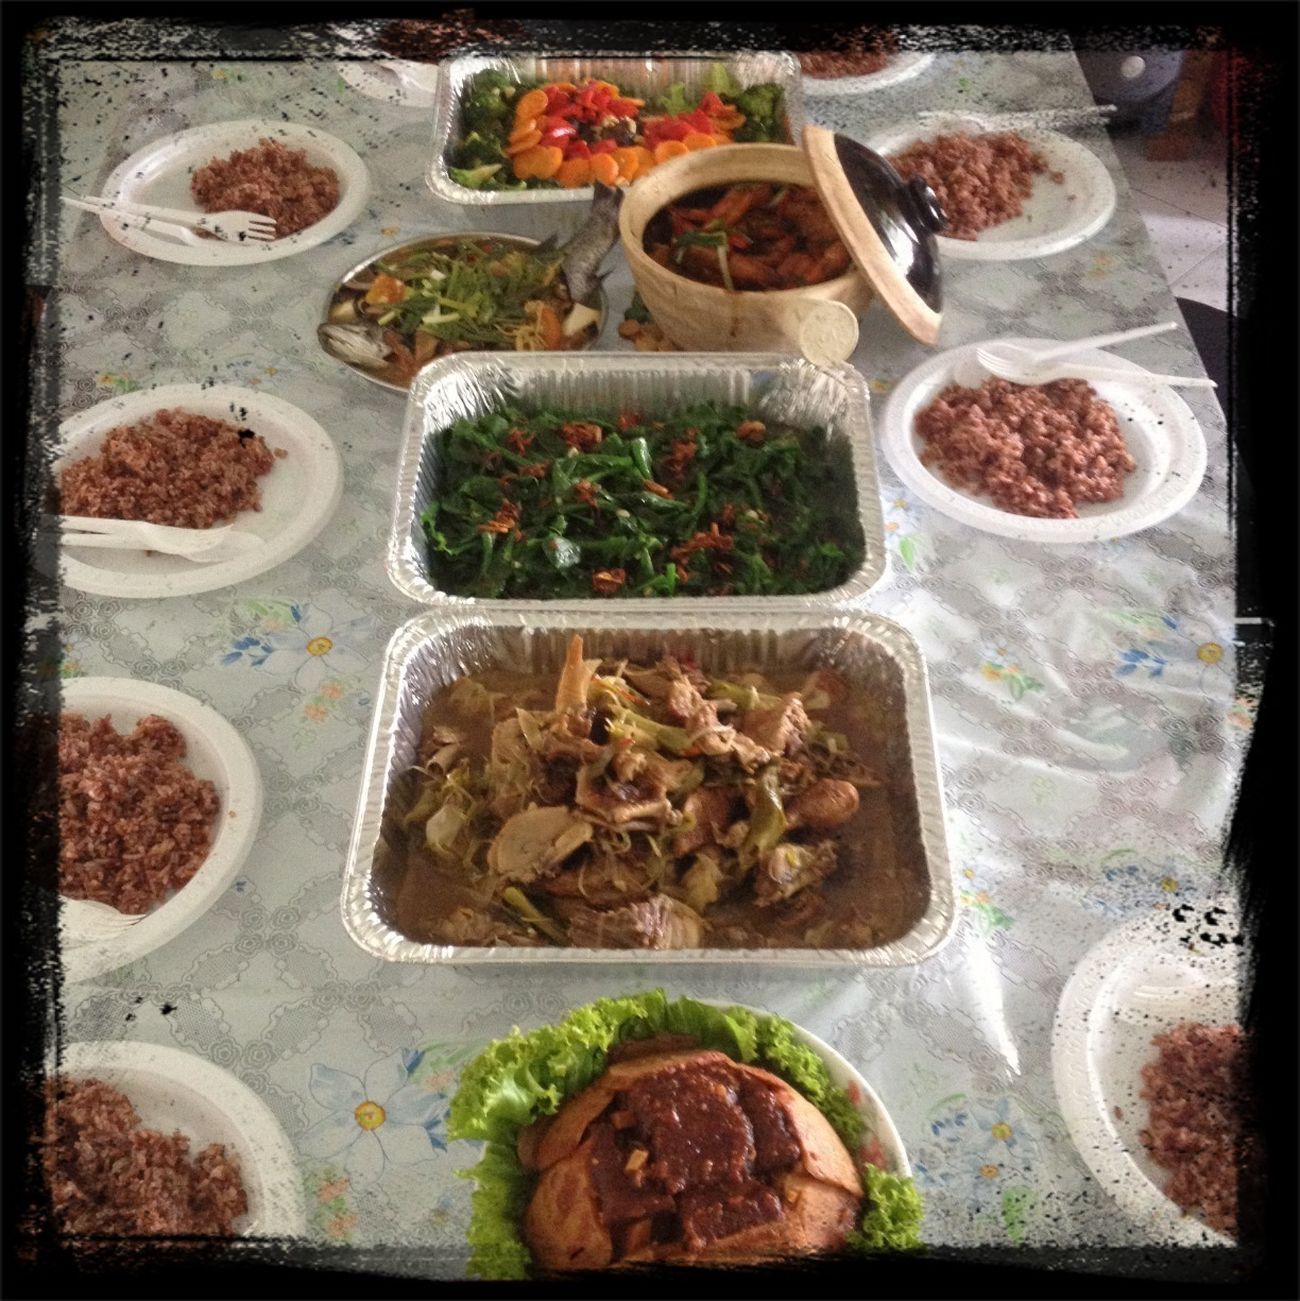 Uncle Who Is A Amazing Cook!! Nice Lunch With Family =)